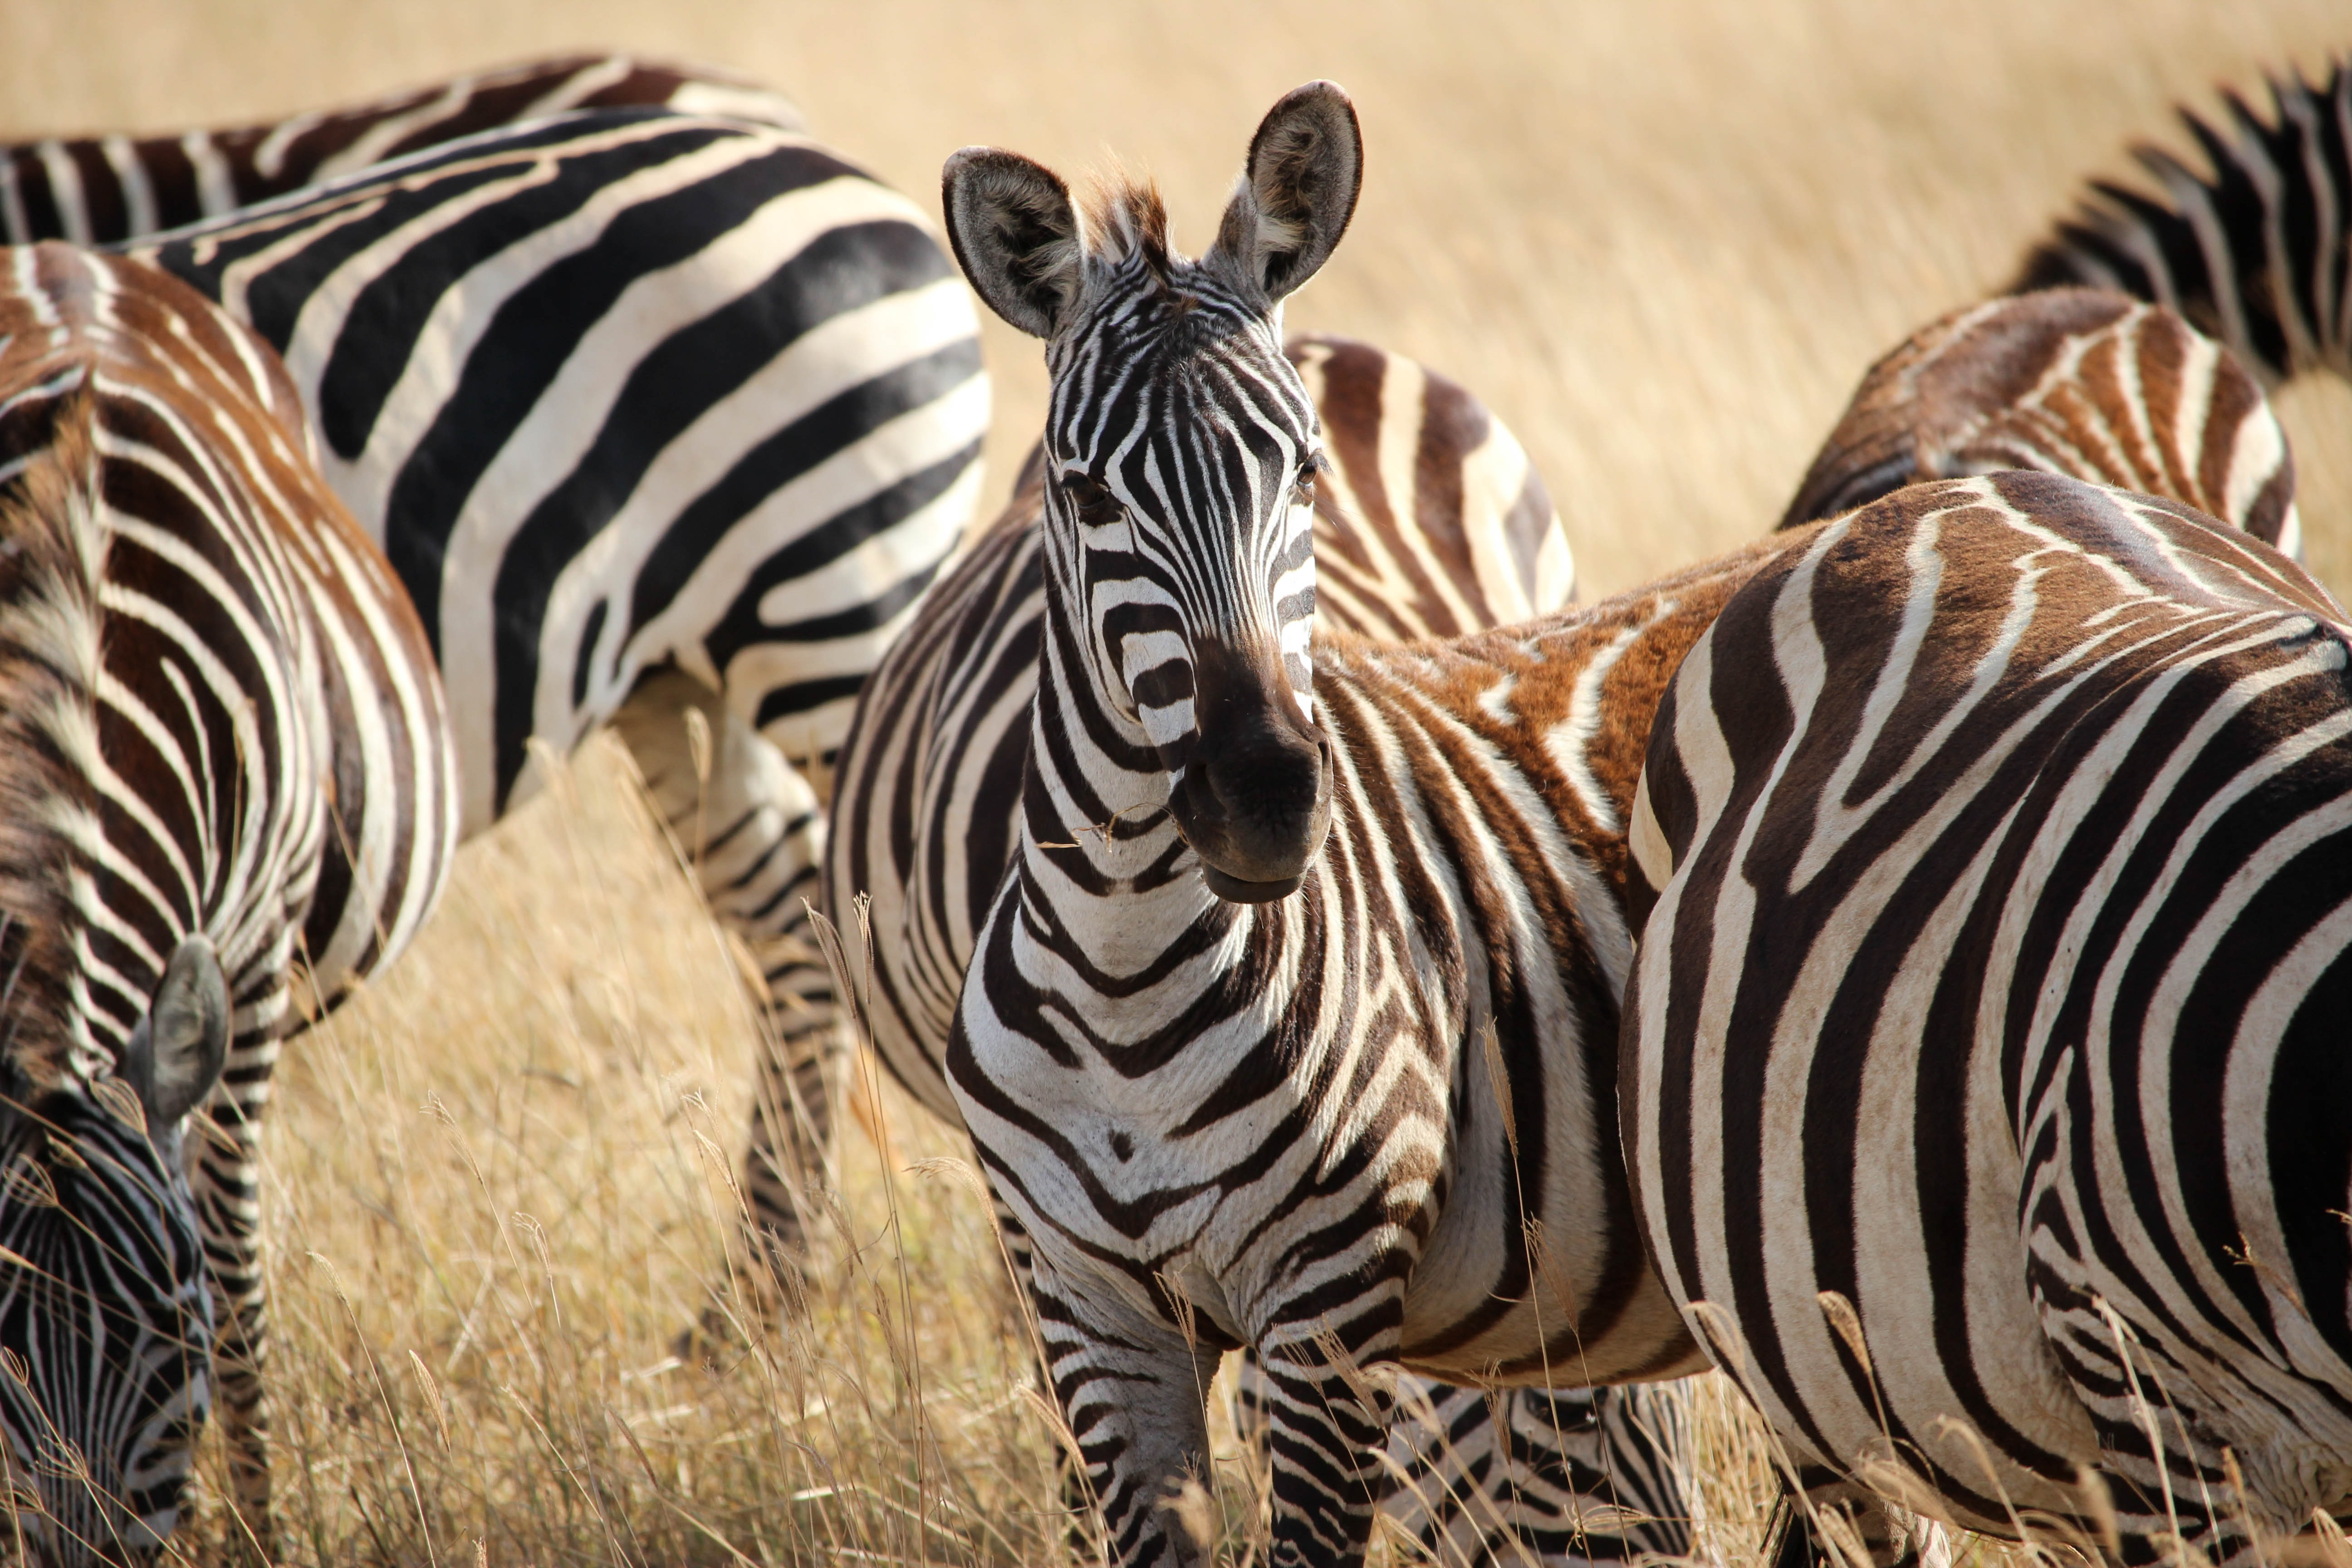 several zebras during daytime